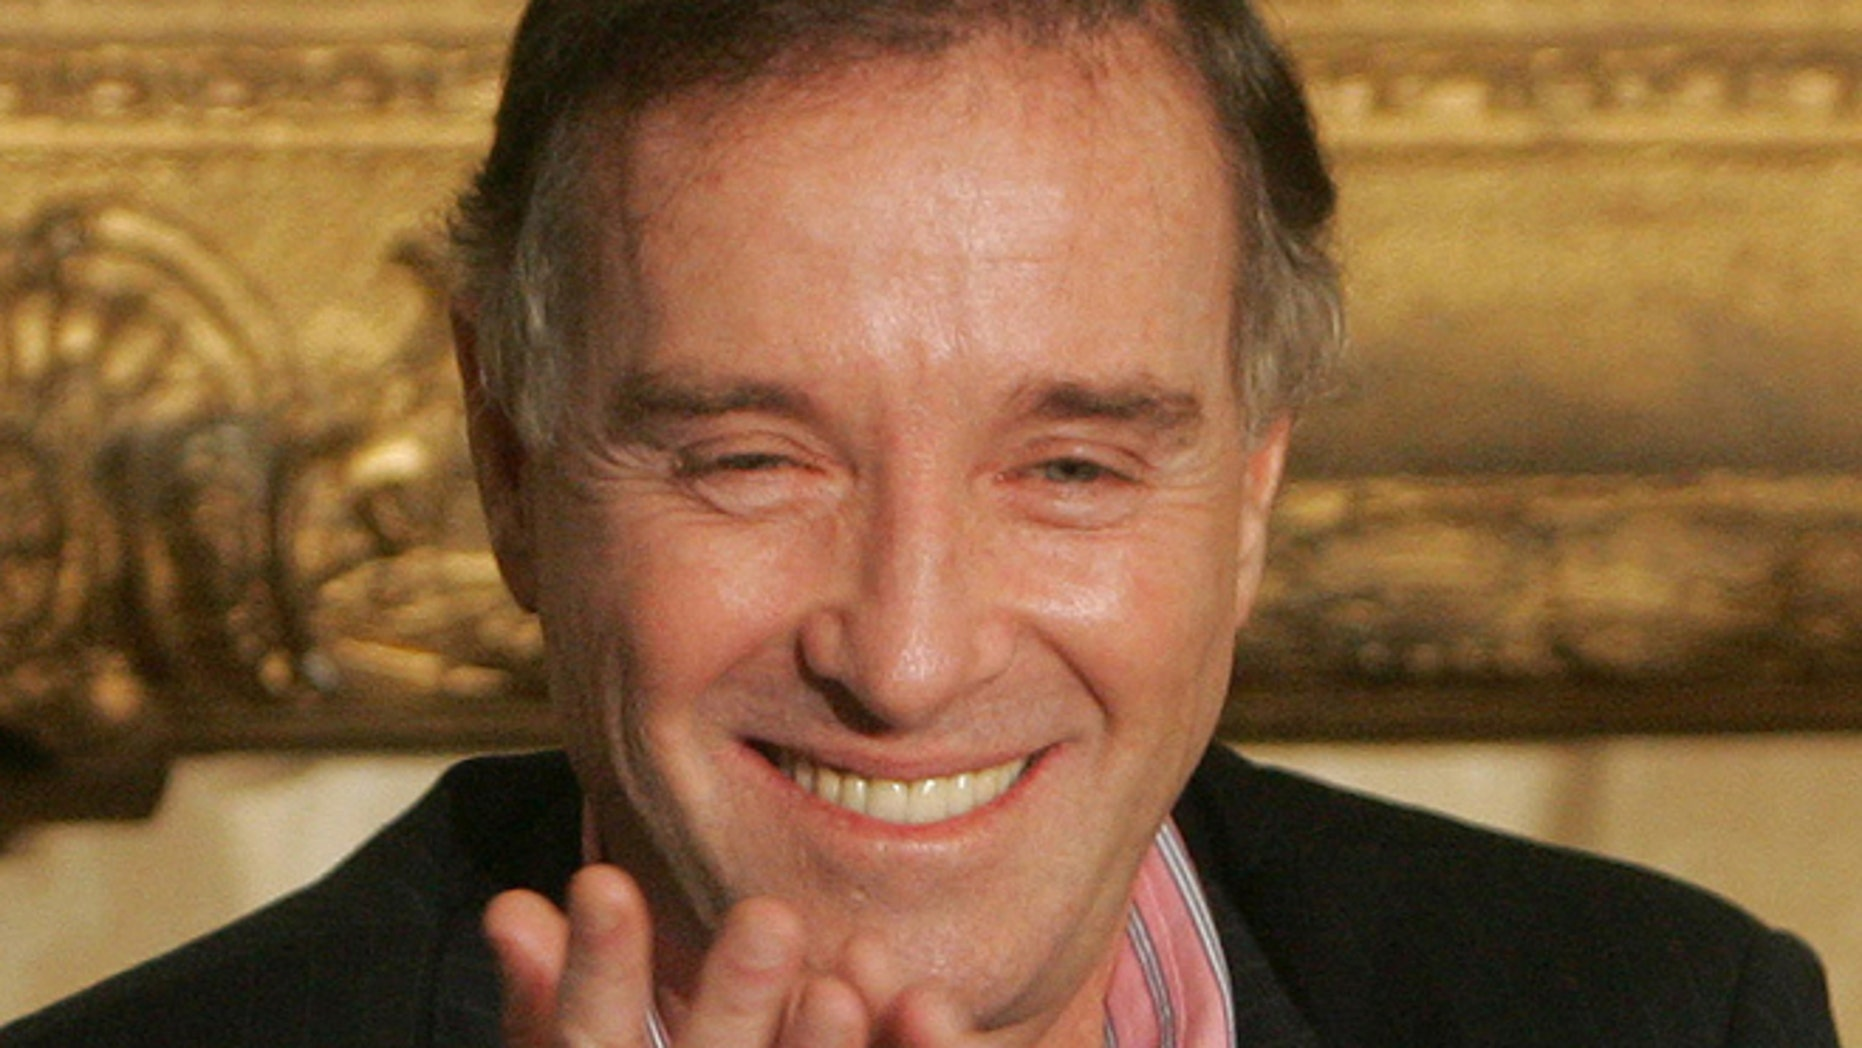 FILE - In this April 7, 2009 file photo, Brazilian billionaire Eike Batista attends a ceremony in which Batista donated about $4.5 U.S. million dollars for the the Rio 2016 Olympic games bid, in Rio de Janeiro, Brazil. The oil company of Brazil's one-time richest man Eike Batista has filed for bankruptcy protection on Oct. 30, 2013. (AP Photo/Ricardo Moraes, File)